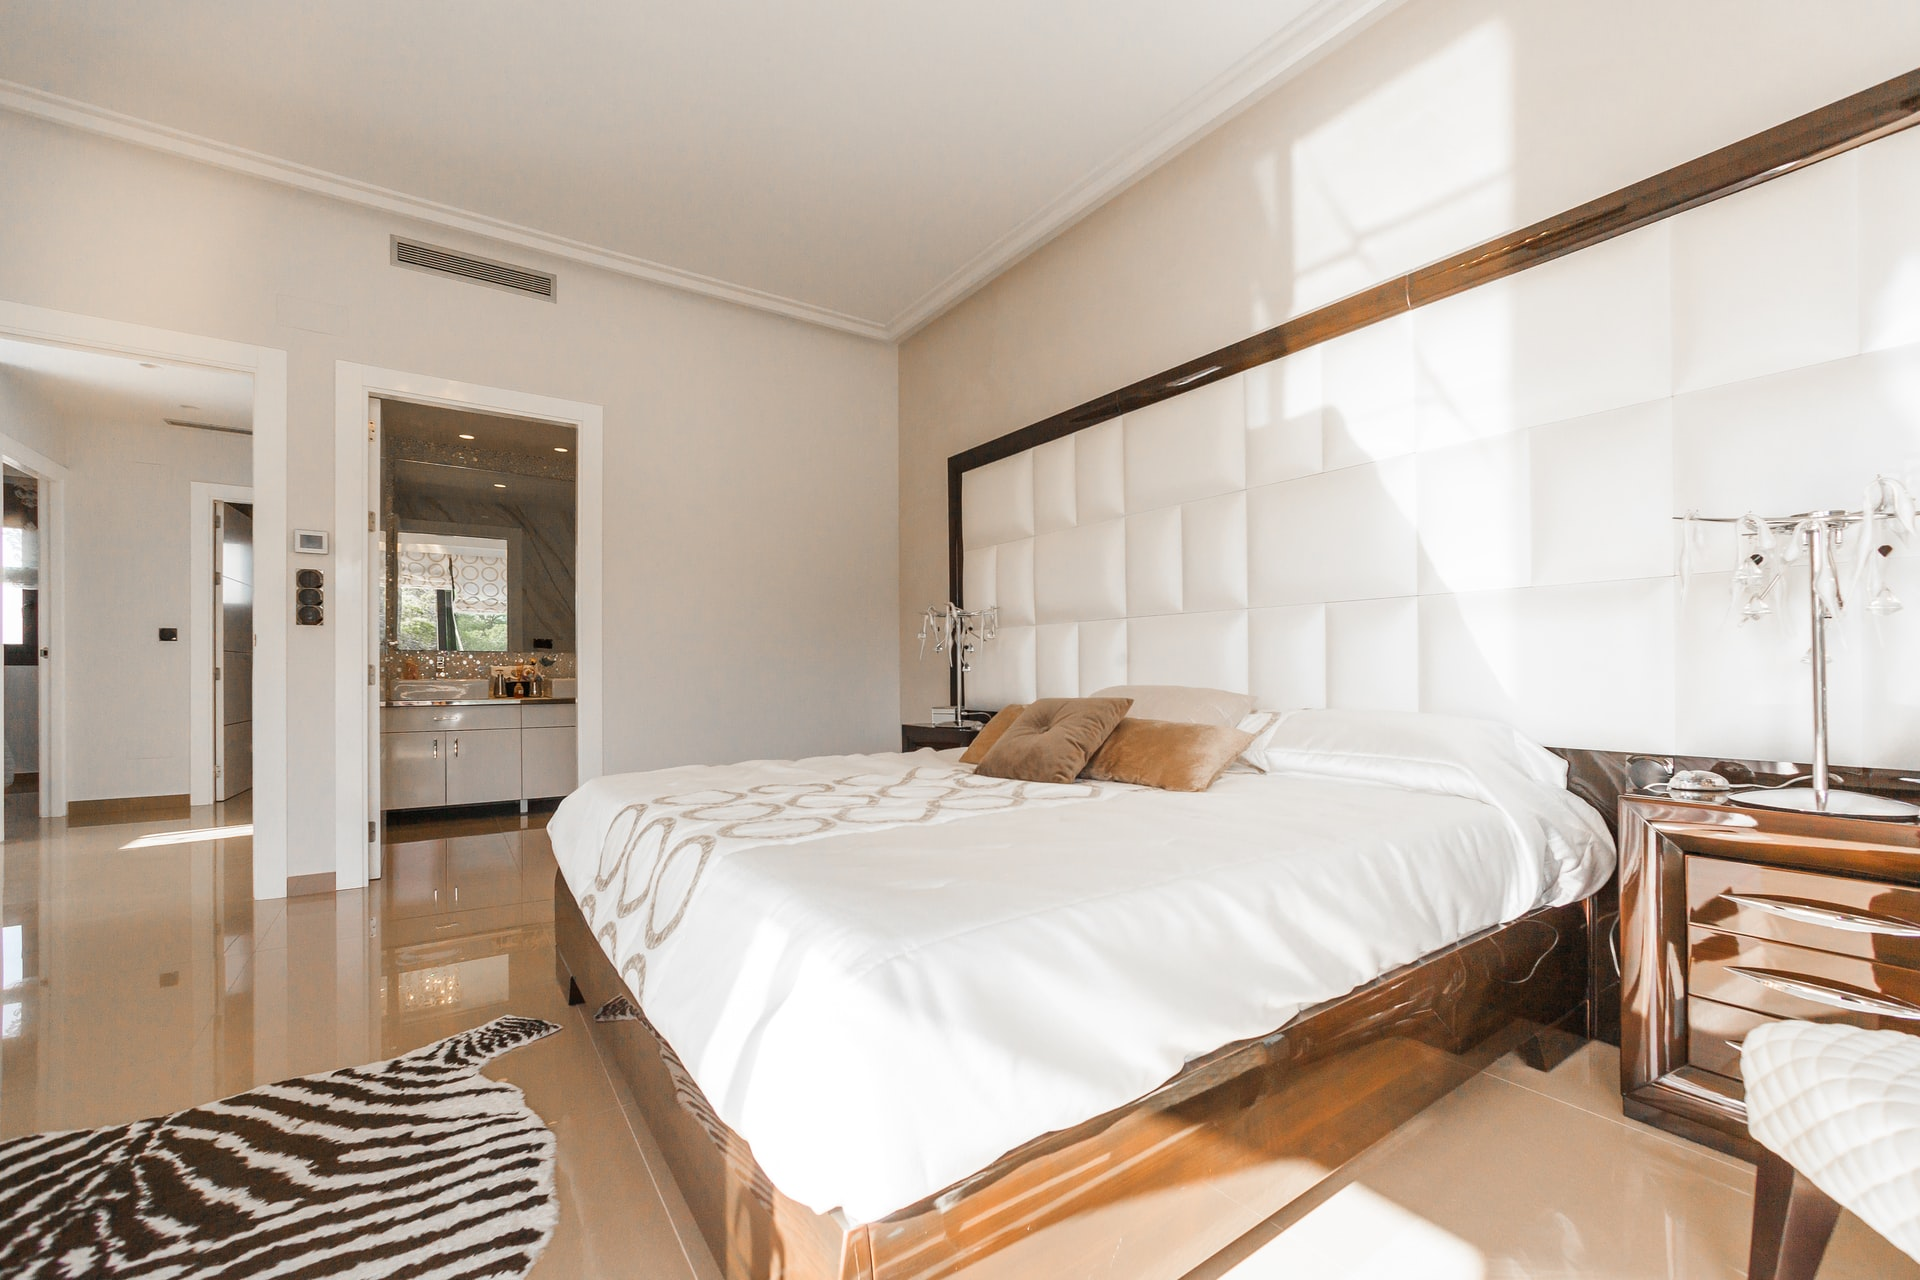 Improve Your Master Bedroom with an On-Suite Home Addition